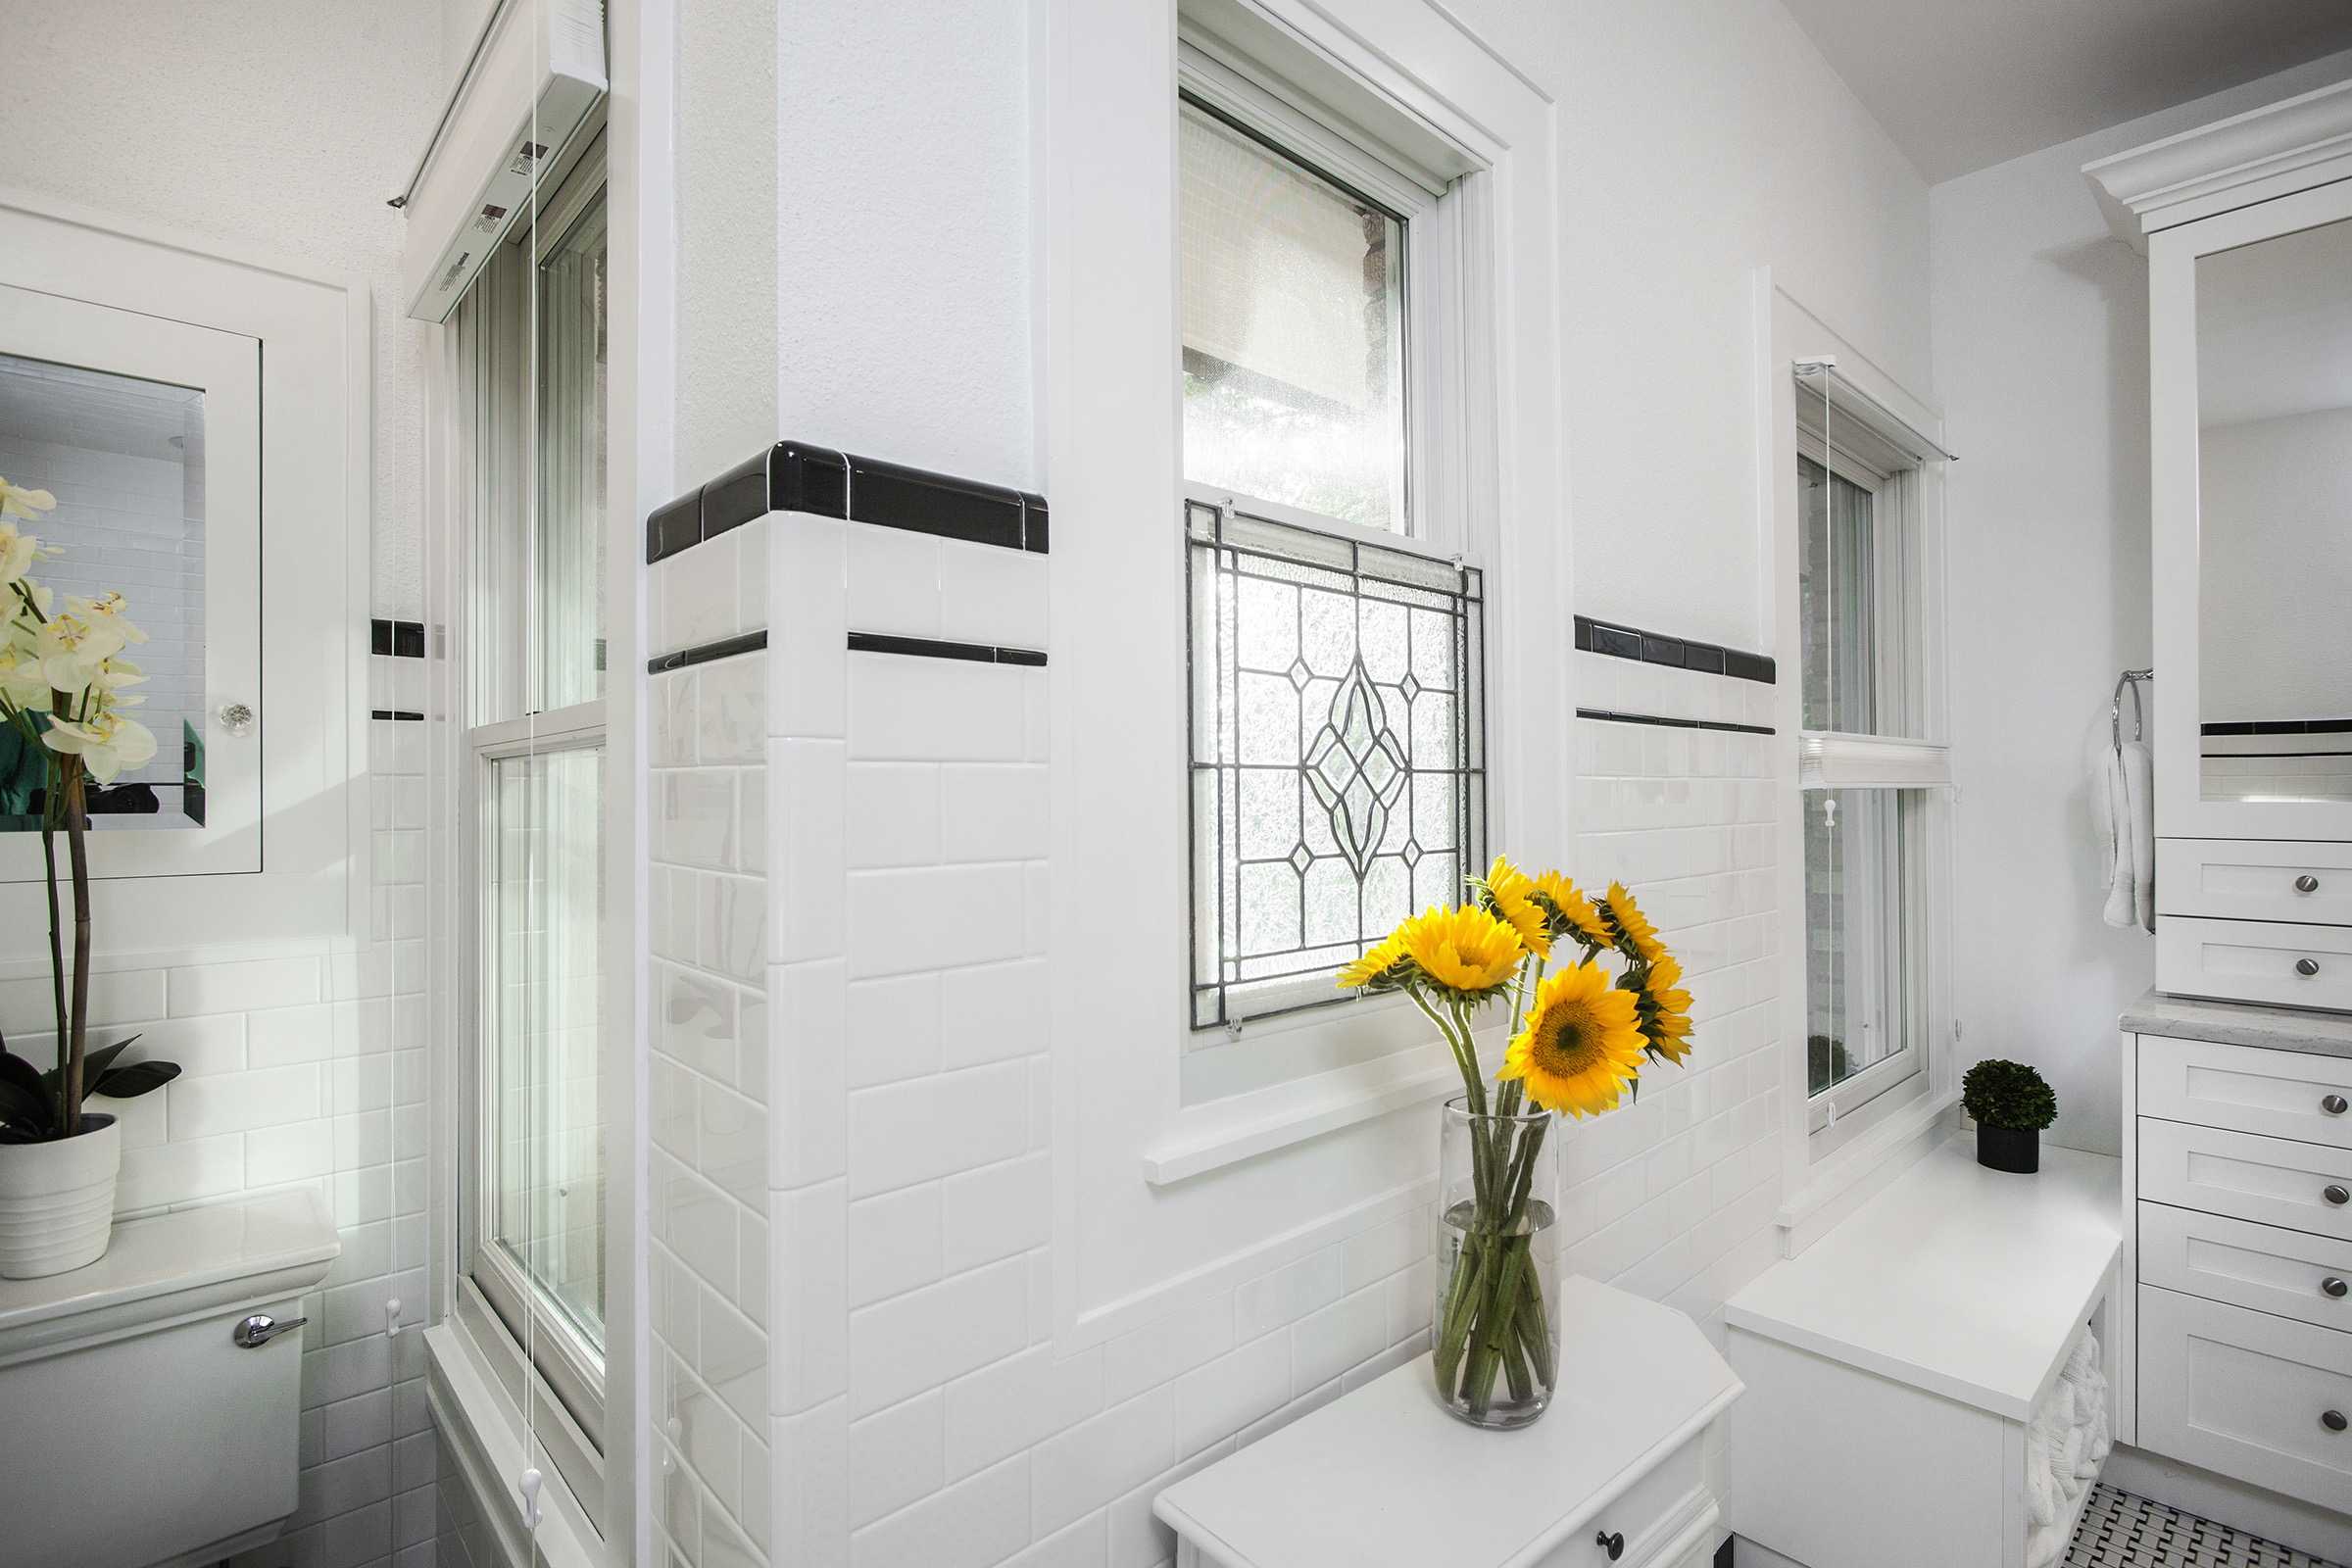 Modern bathroom decor accessories - Accessories And Sunflowers For Modern Bathroom Decor Image 3 Of 14